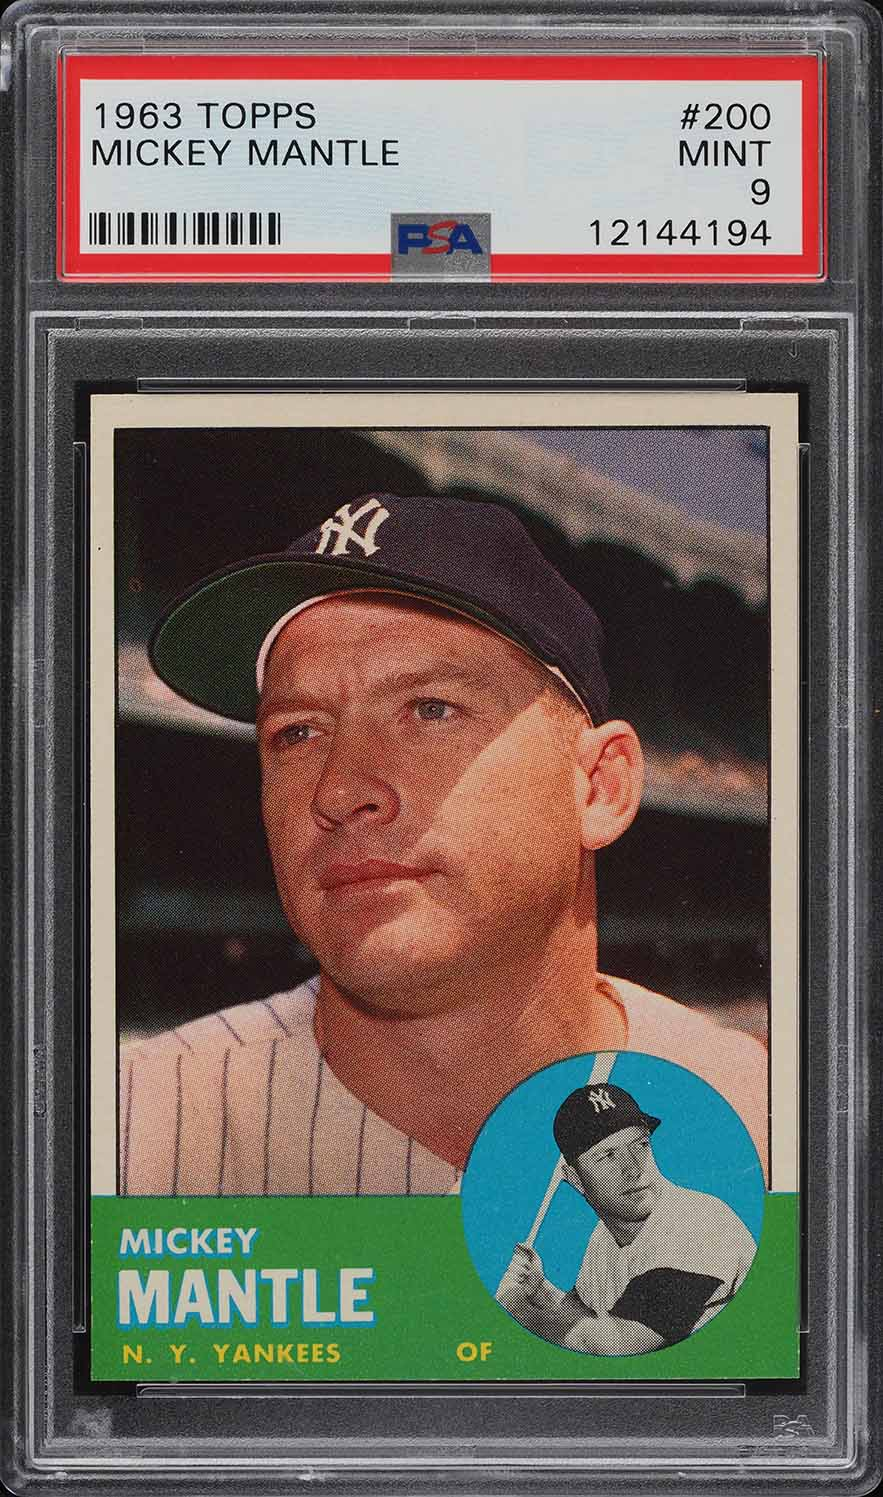 1963 Topps Mickey Mantle #200 PSA 9 MINT - Image 1